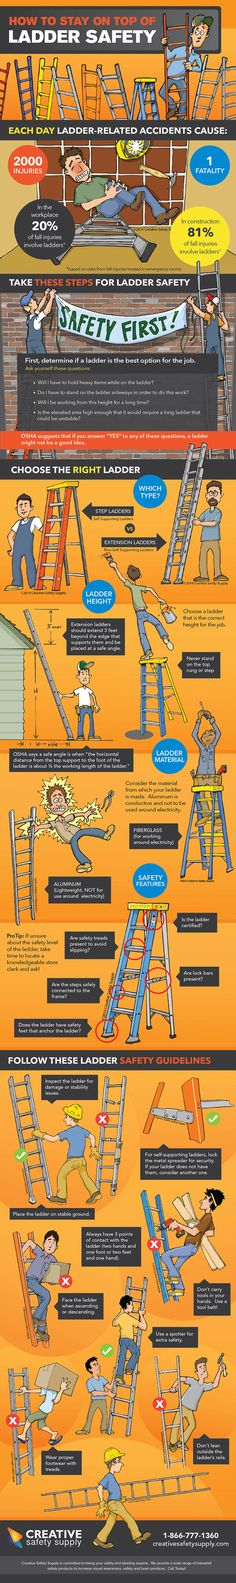 How to Stay on Top of Ladder Safety